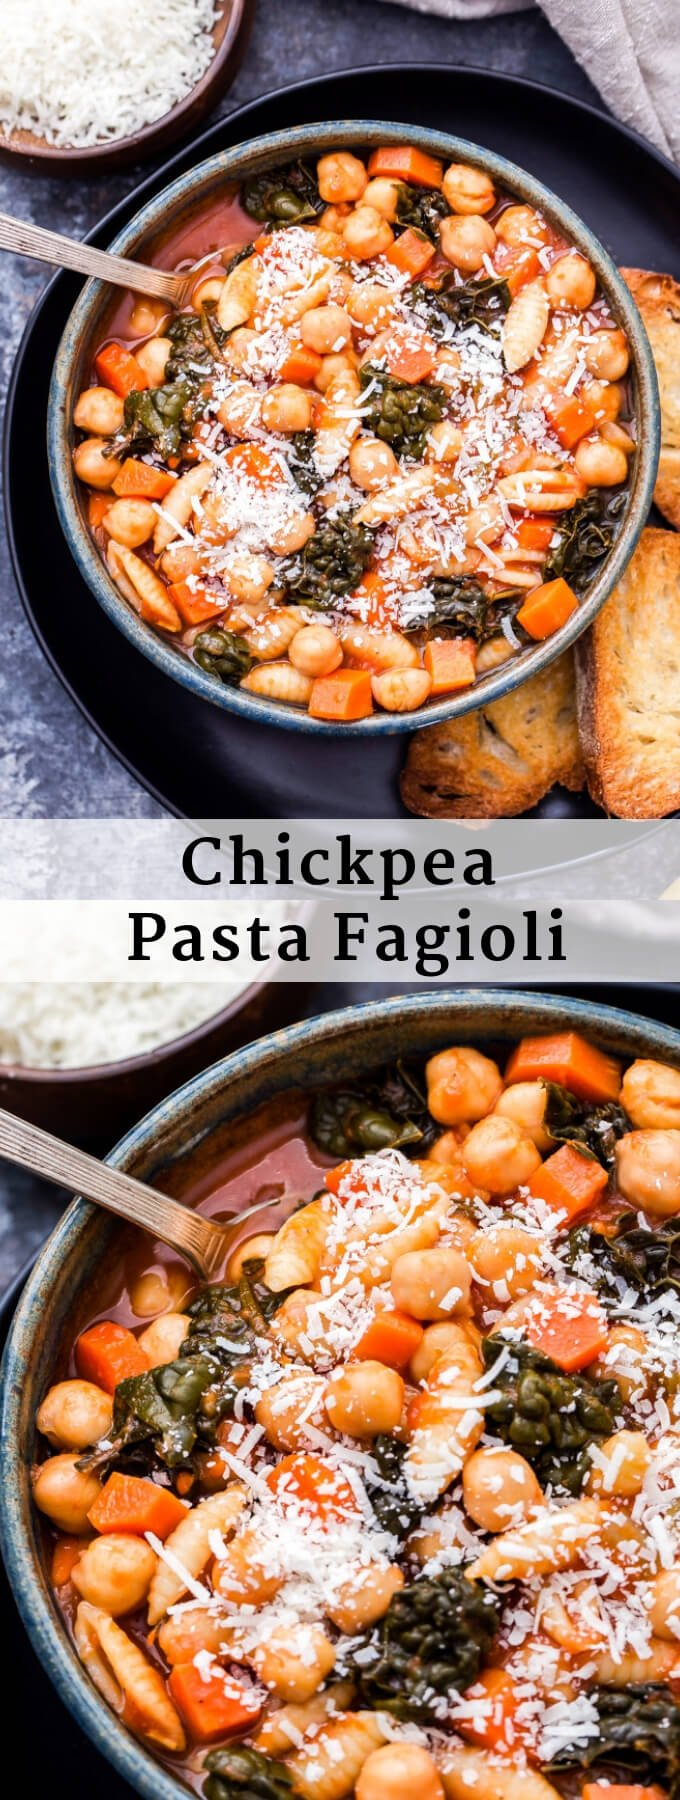 Chickpea Pasta Fagioli is a twist on the classic Italian soup recipe. This cozy bowl of healthy comfort food is sure to warm you up on even the coldest day! #soup #pastafagioli #healthydinner #chickpeas #glutenfree #italianfood #justaddpulses #worldpulseday #halfcuphabit